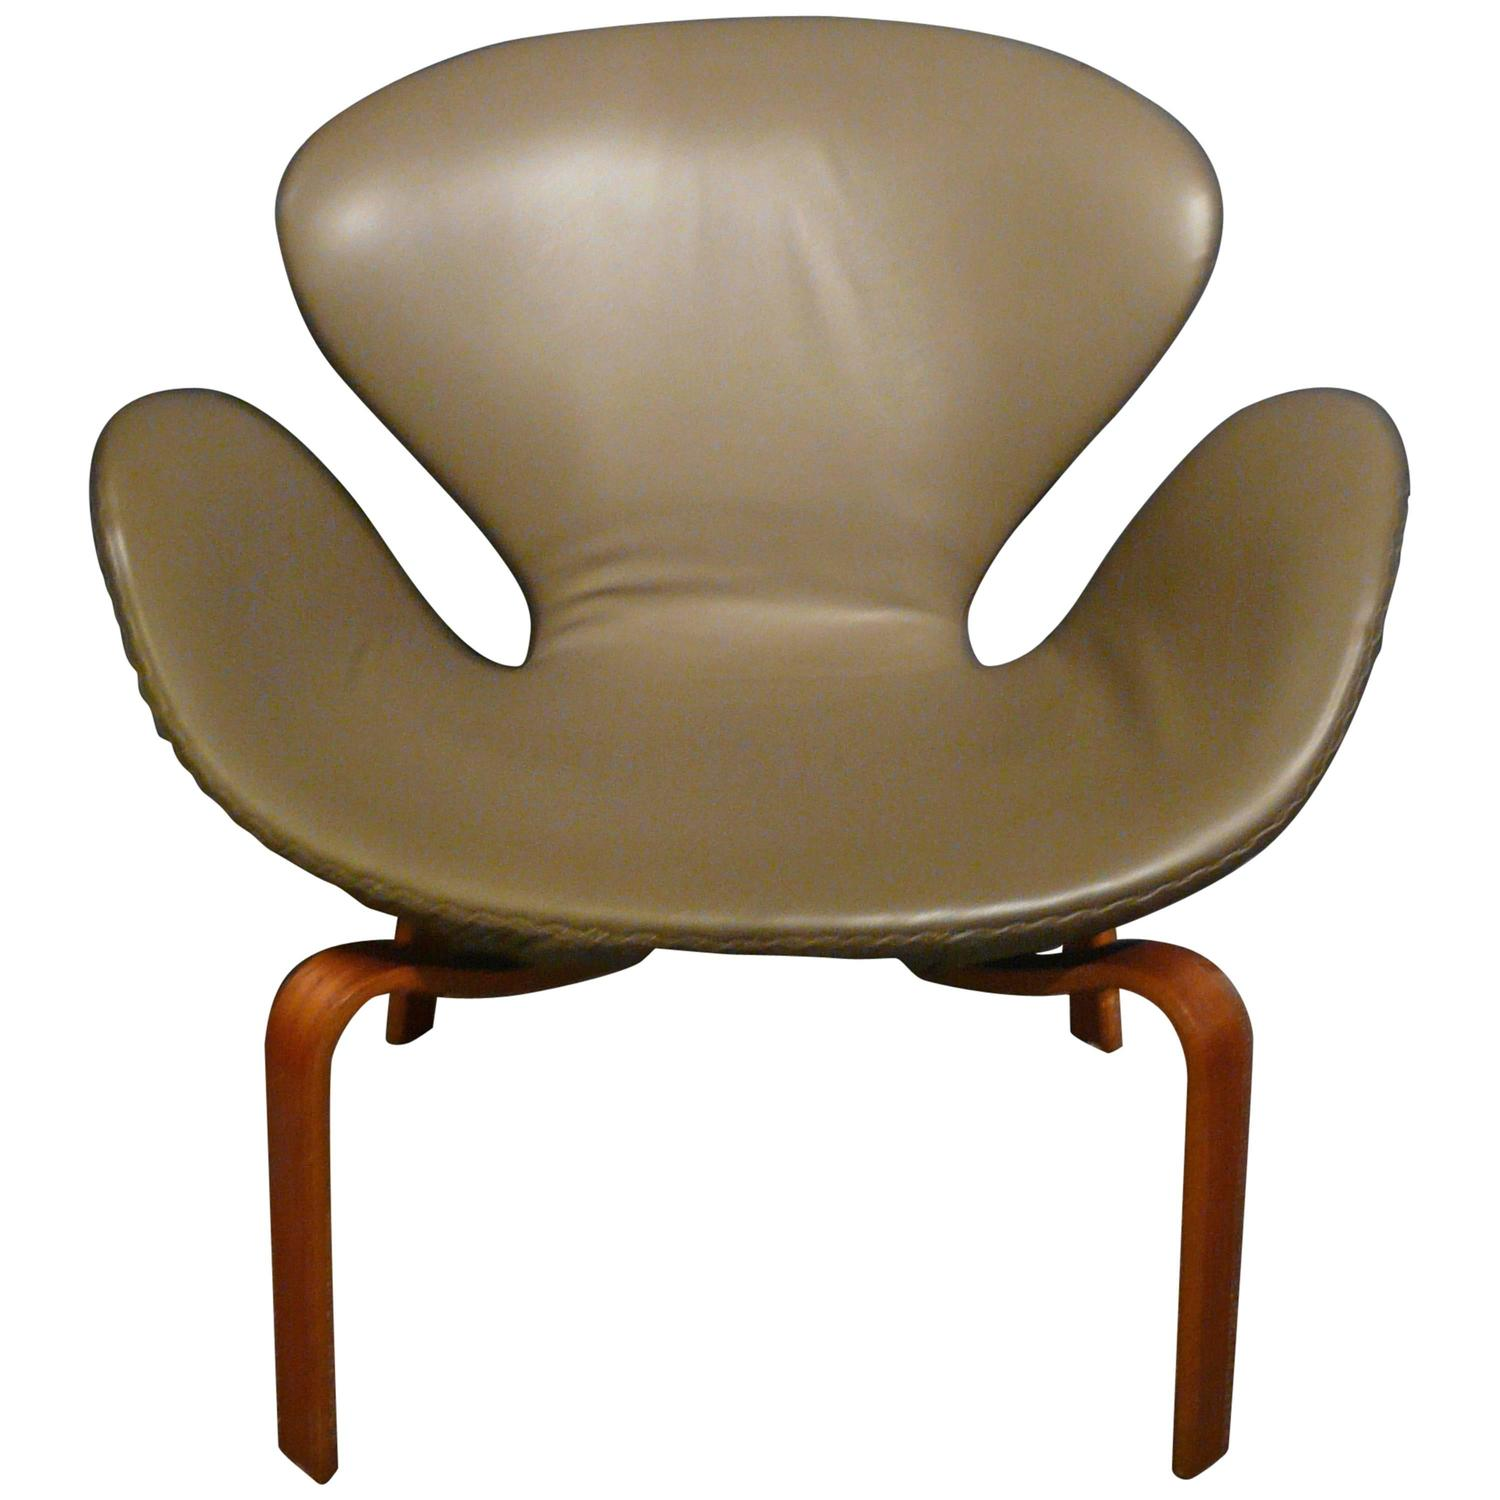 Arne jacobsen swan chair for sale at 1stdibs for Swan chairs for sale